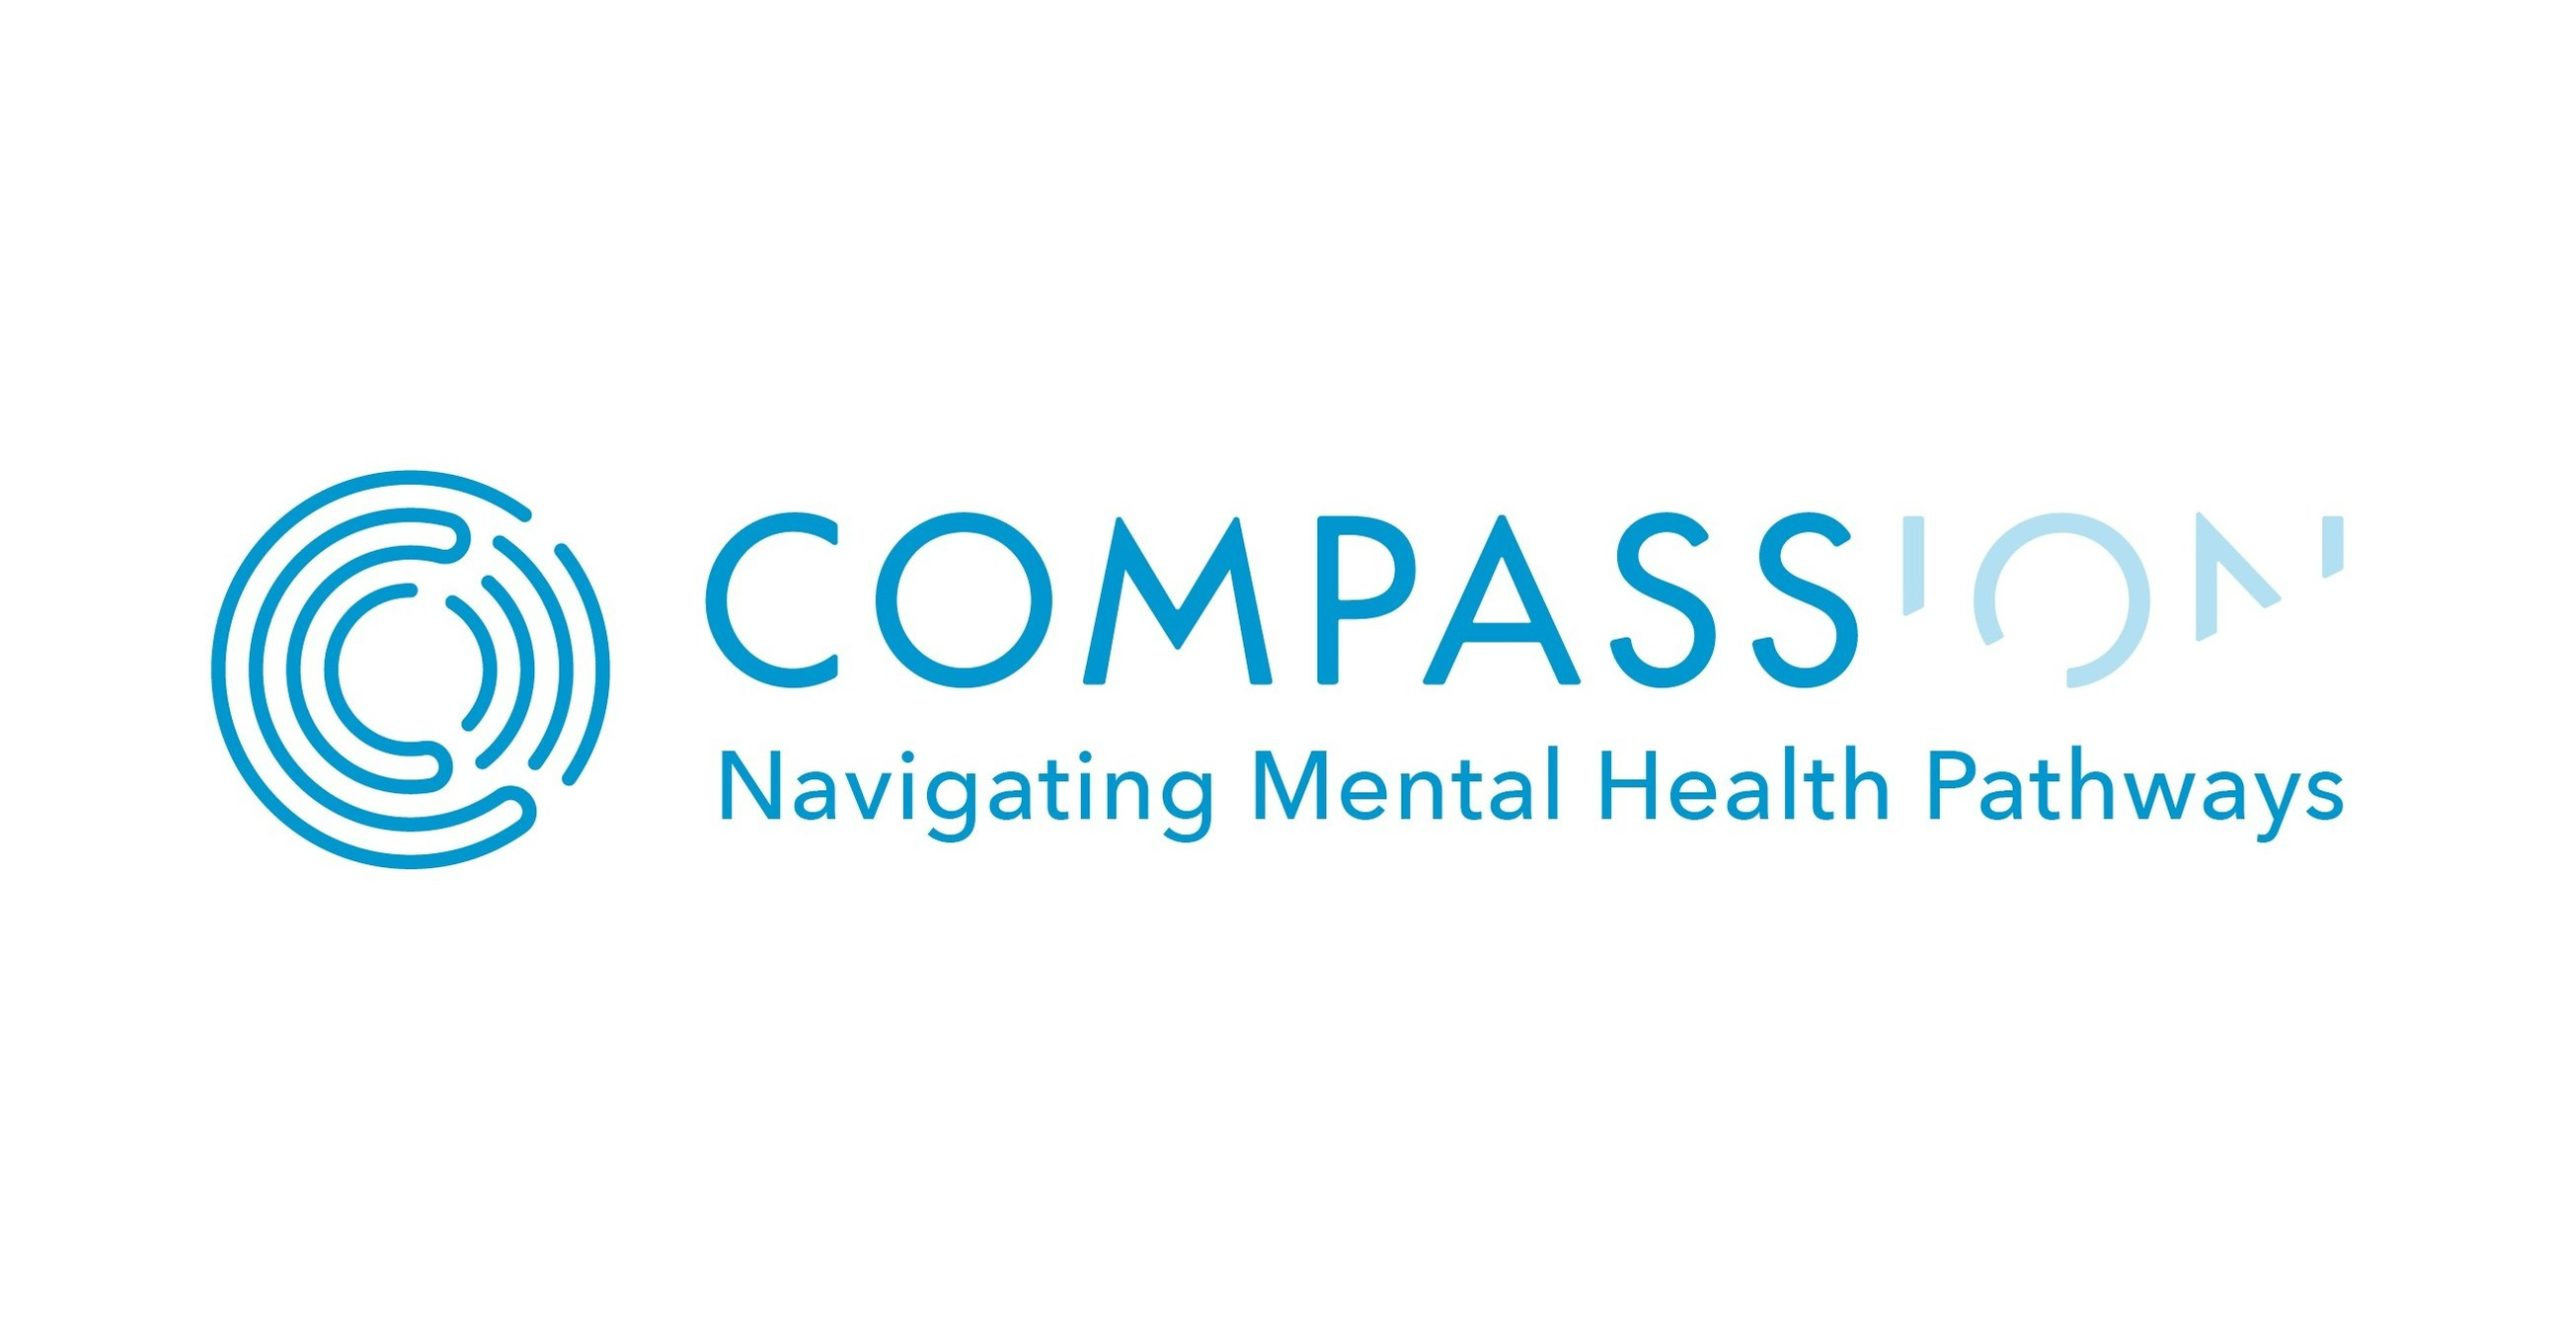 Compass Pathways (CMPS) Potential Lead in Psychedelic Sector